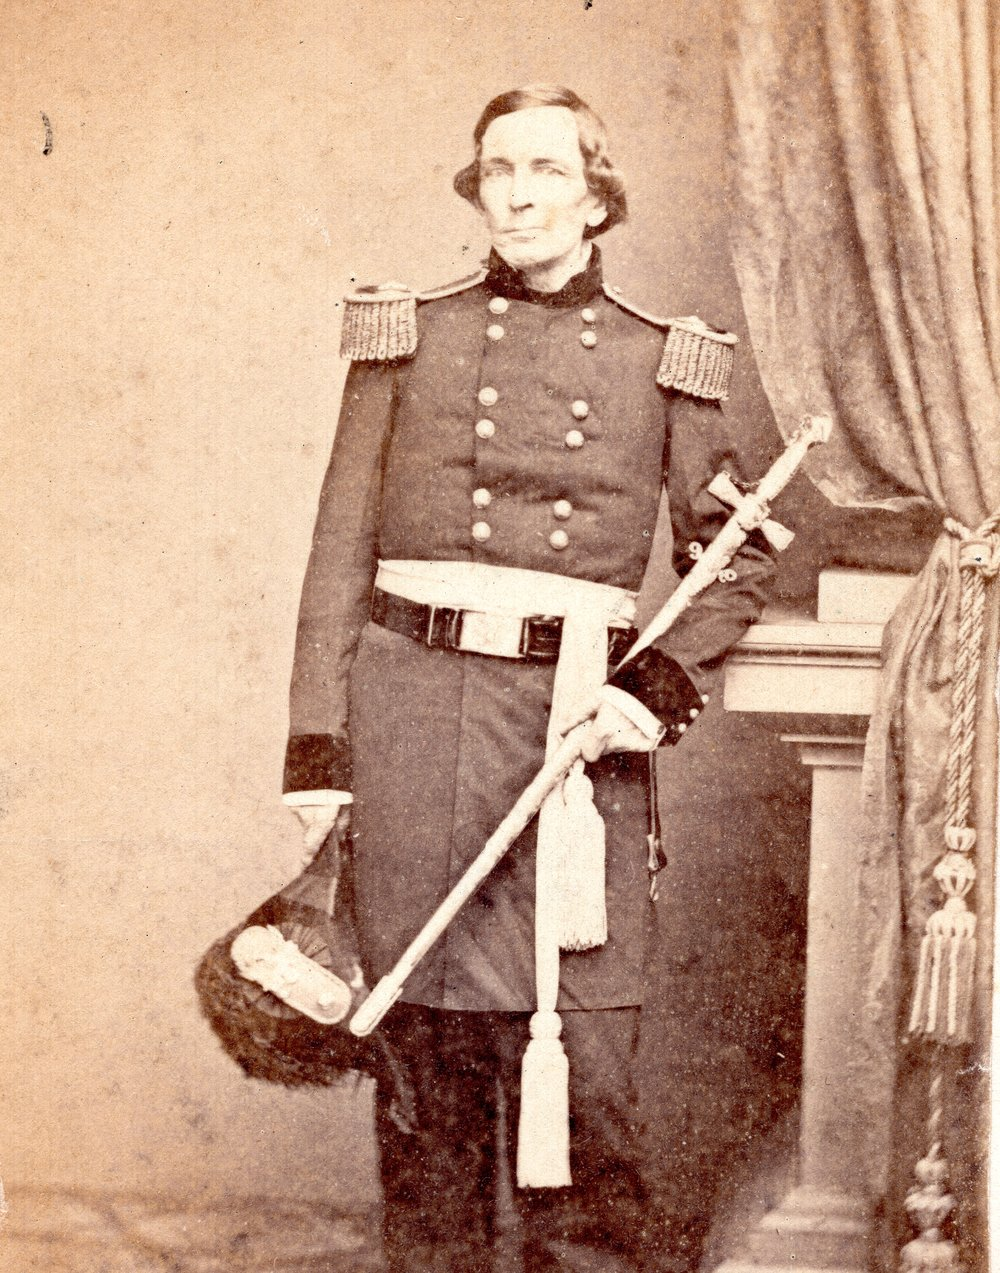 General John Garland United States Army, ca. 1860. Like many families during the Civil War, the Garlands had family members fighting for both sides.